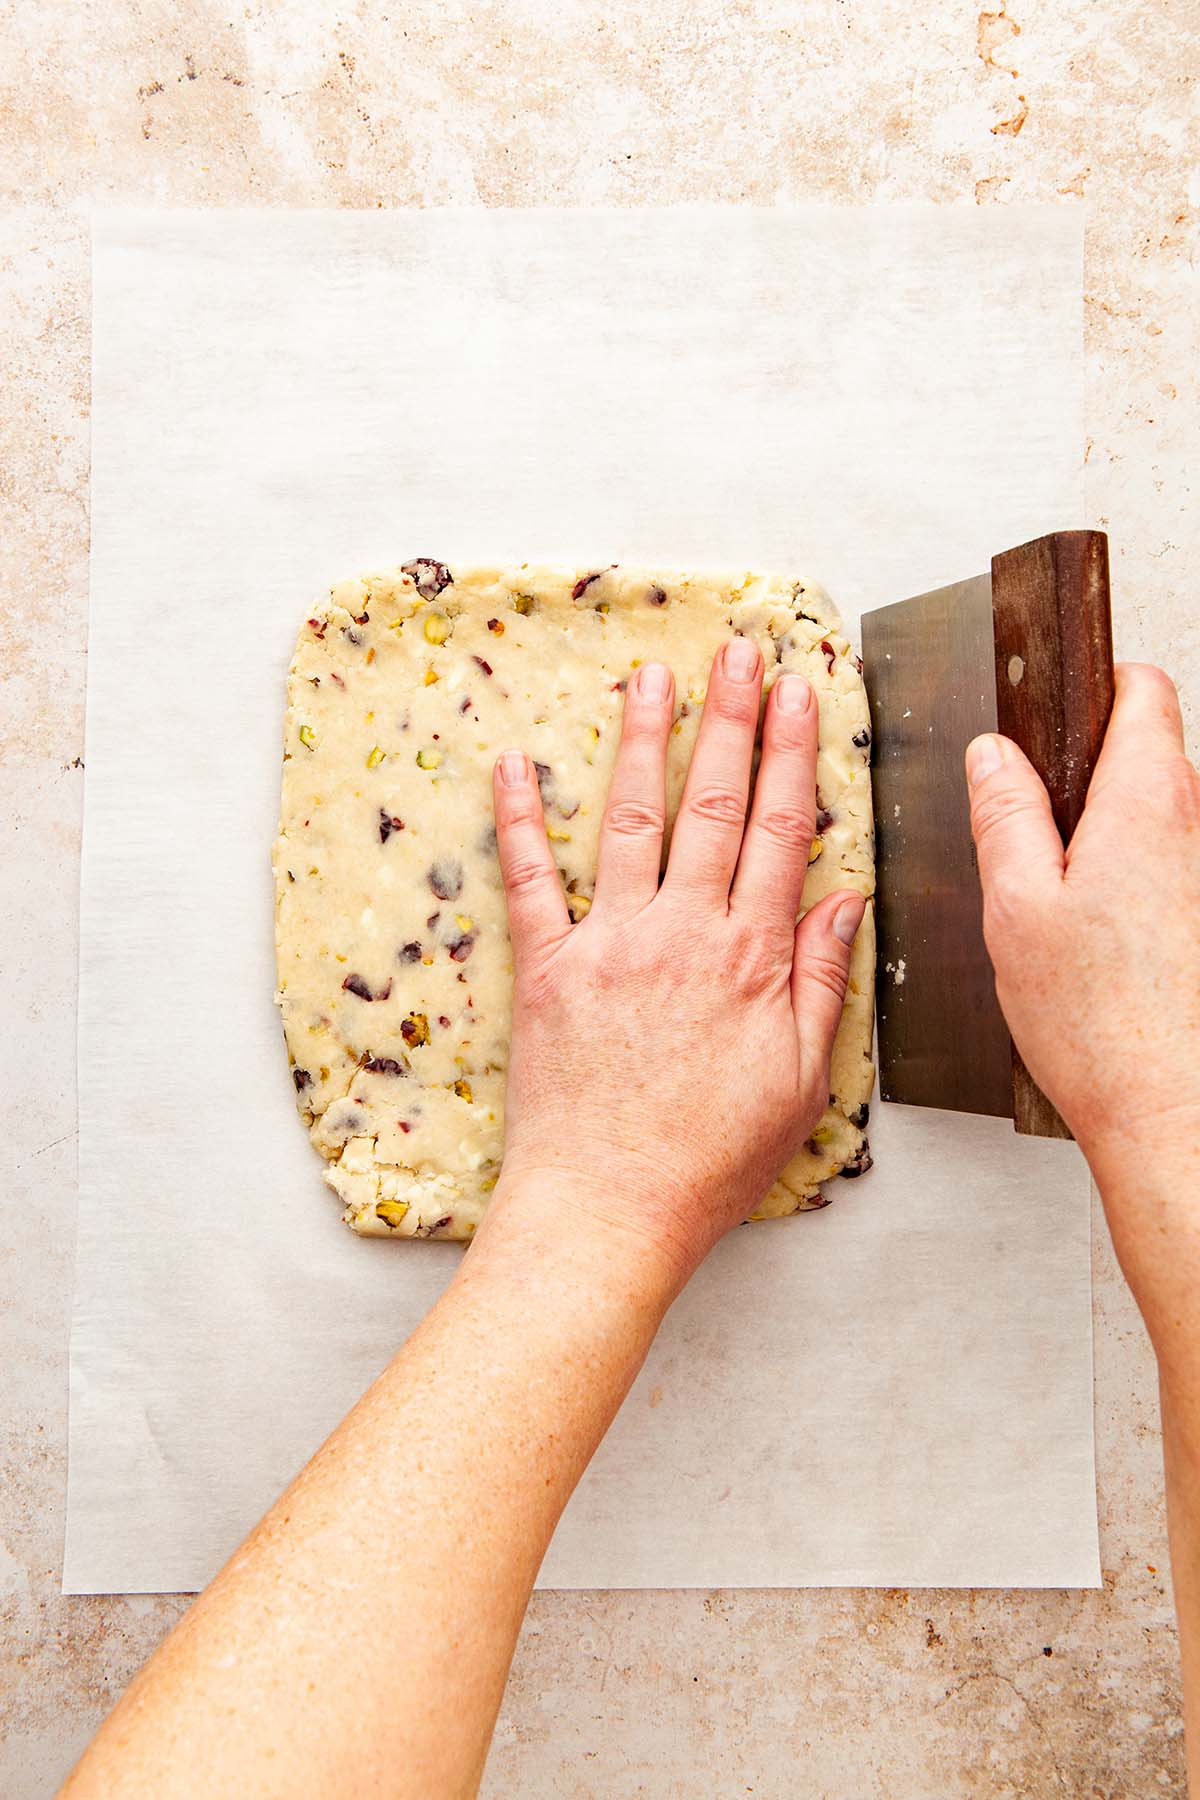 Hands shaping cookie dough into a perfect rectangle using a bench scraper.